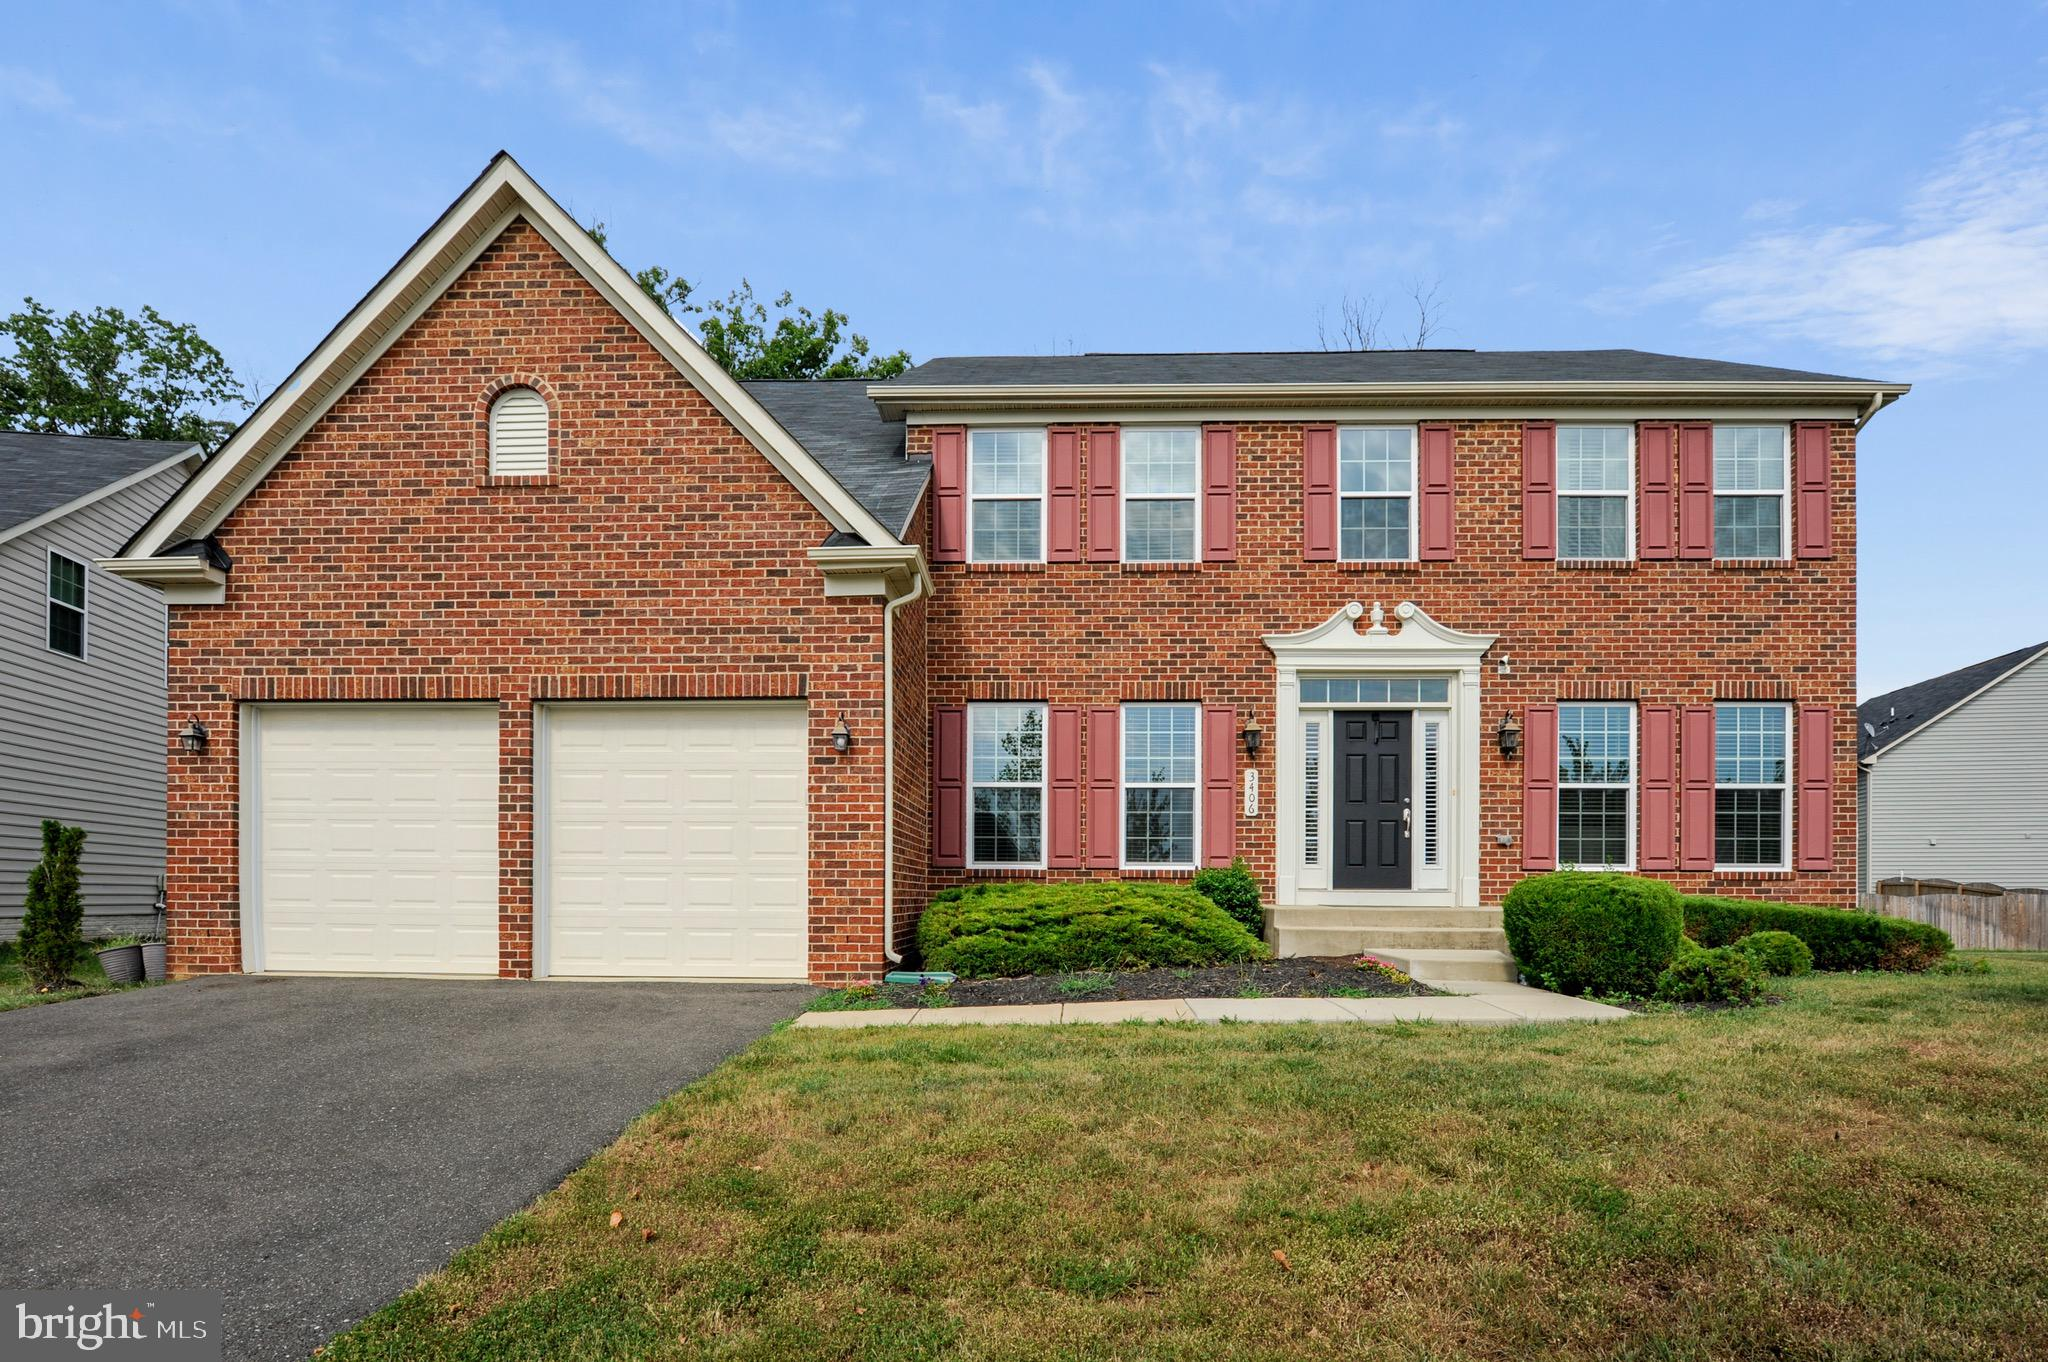 3406 WENDELLS LANE, ACCOKEEK, MD 20607